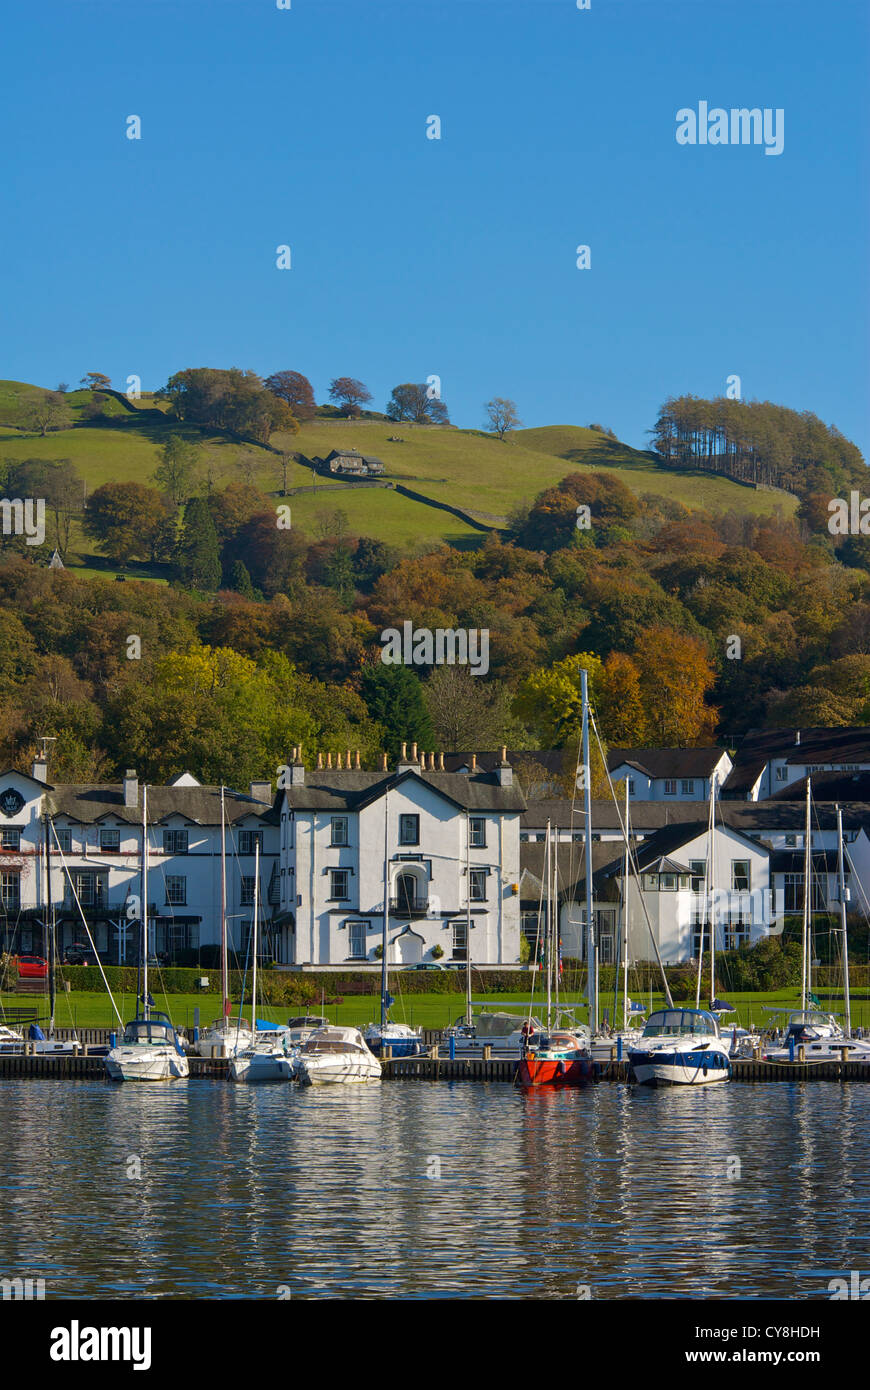 The Low Wood Hotel and marina, on the shore of Lake Windermere, Lake District National Park, Cumbria England UK - Stock Image